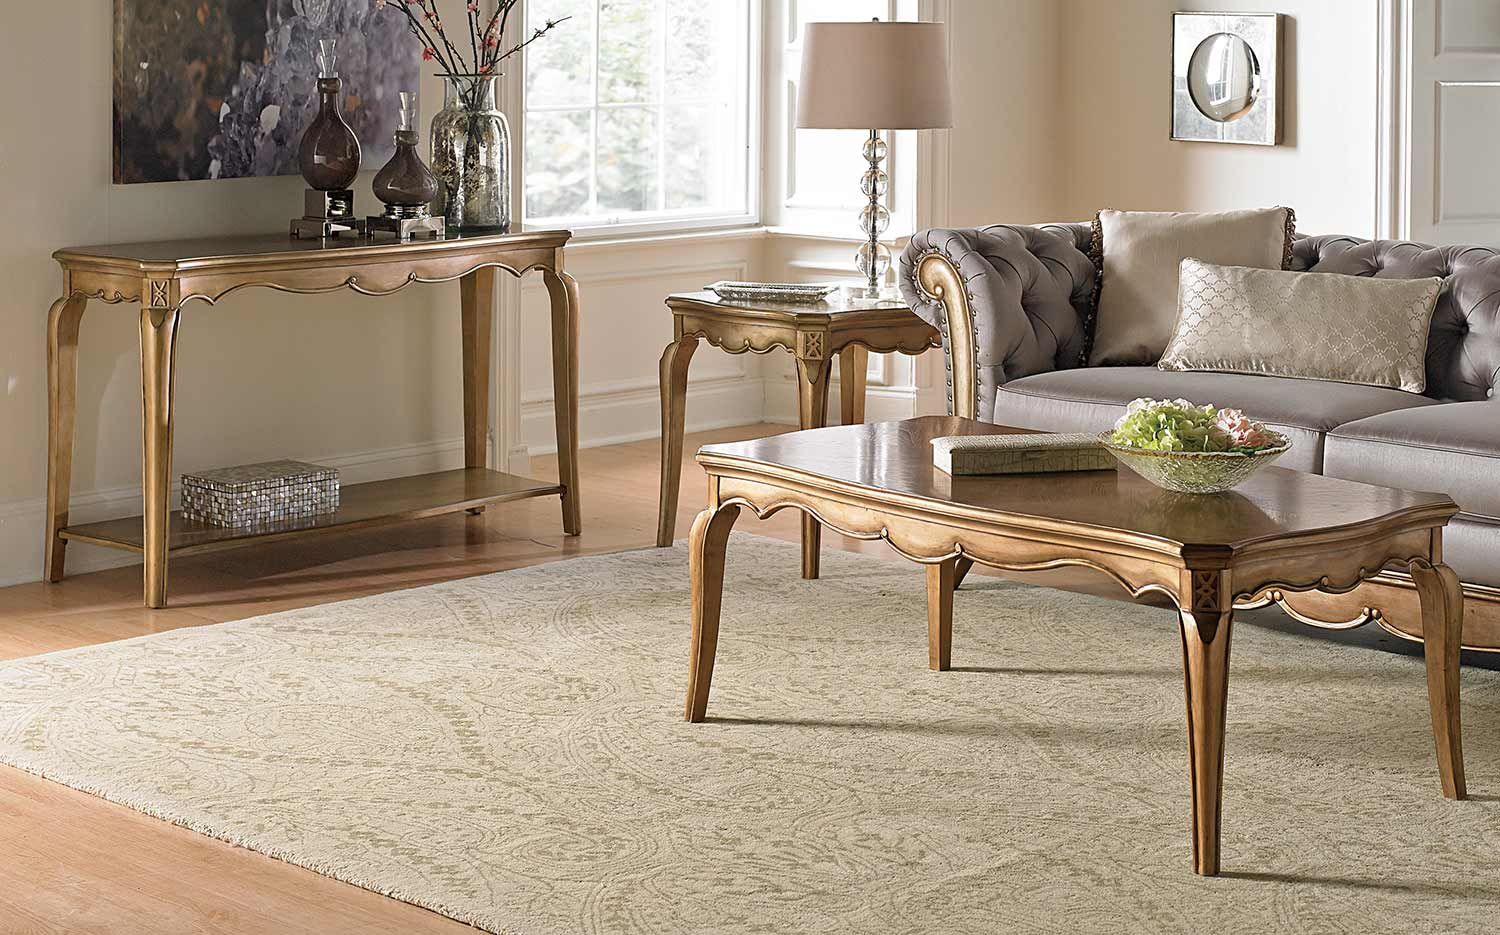 Homelegance Chambord Coffee Table Set Champagne Gold 1828